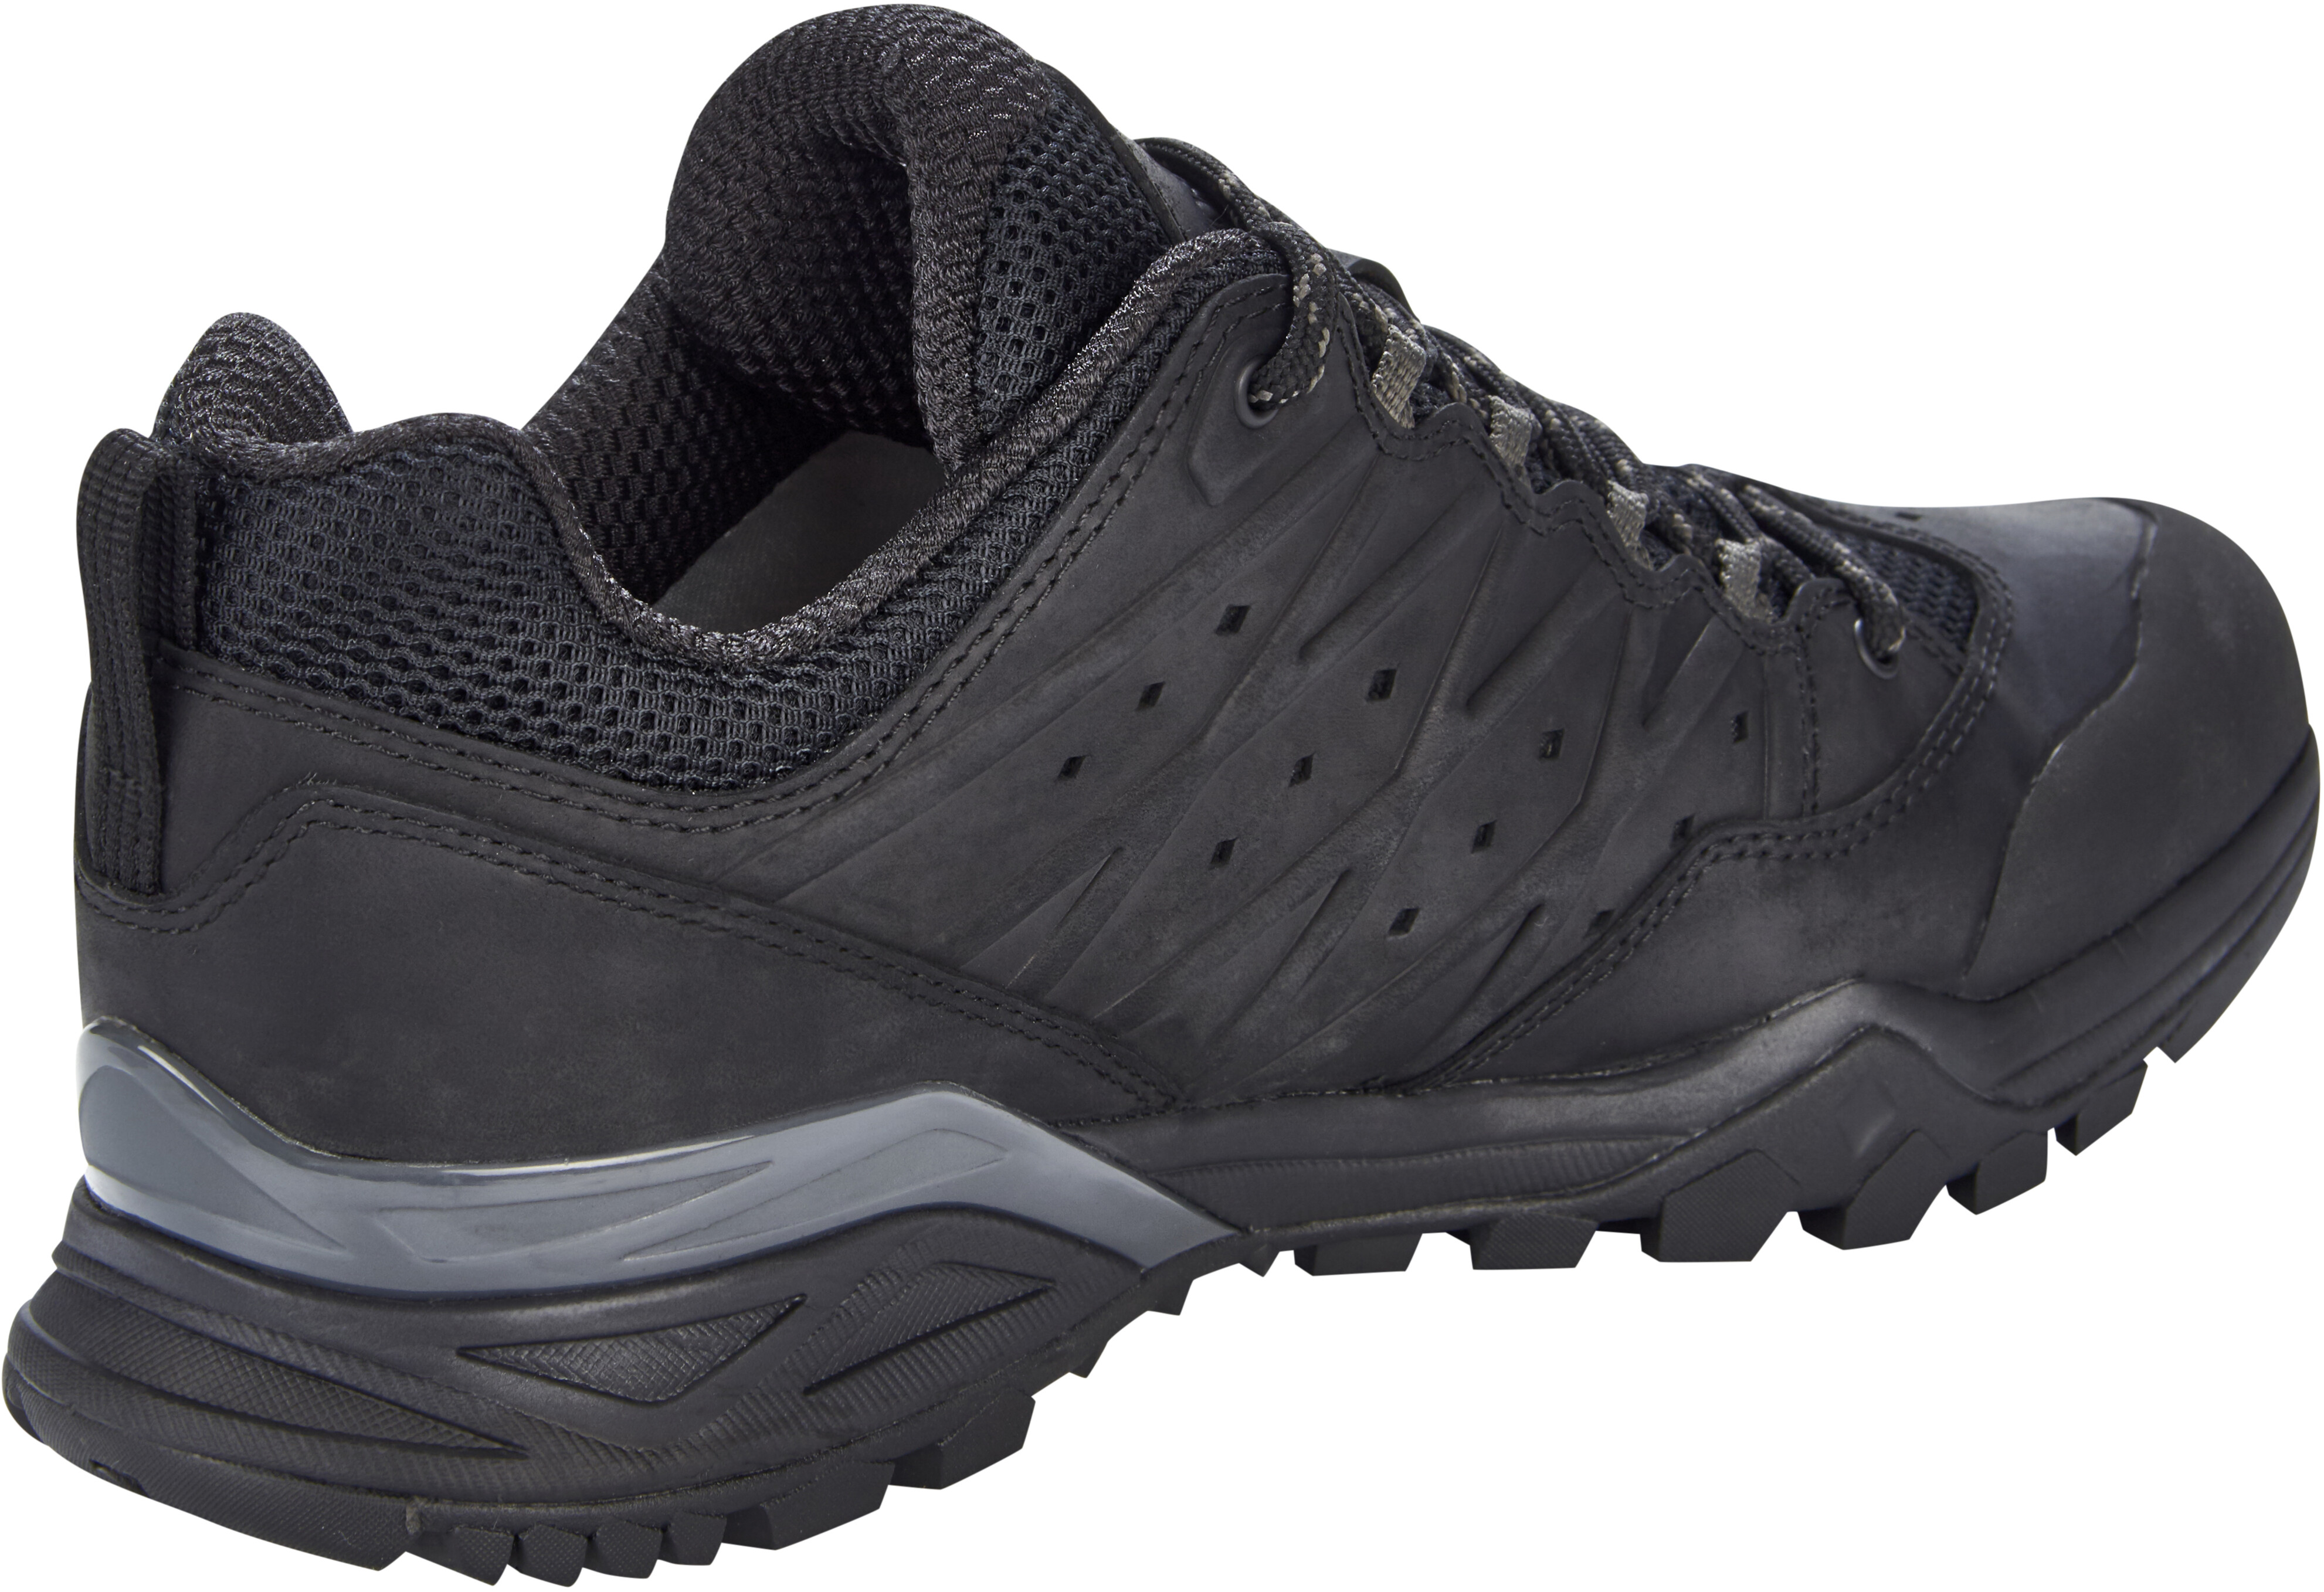 109c0e430fb The North Face Hedgehog Hike II GTX Shoes Men tnf black/graphite grey